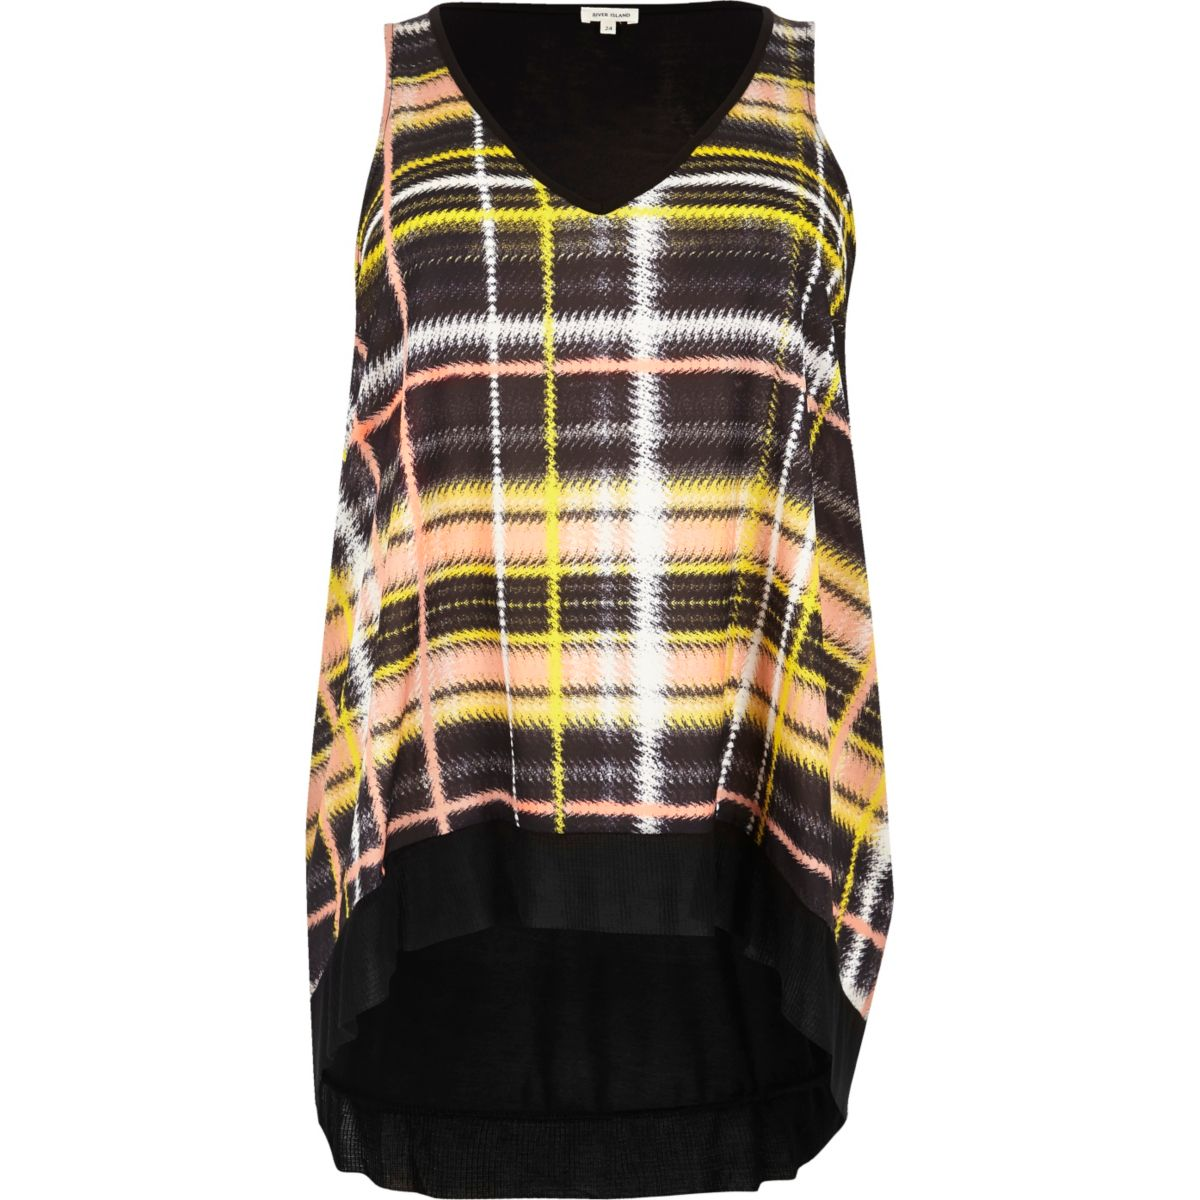 Plus yellow check V-neck tank top